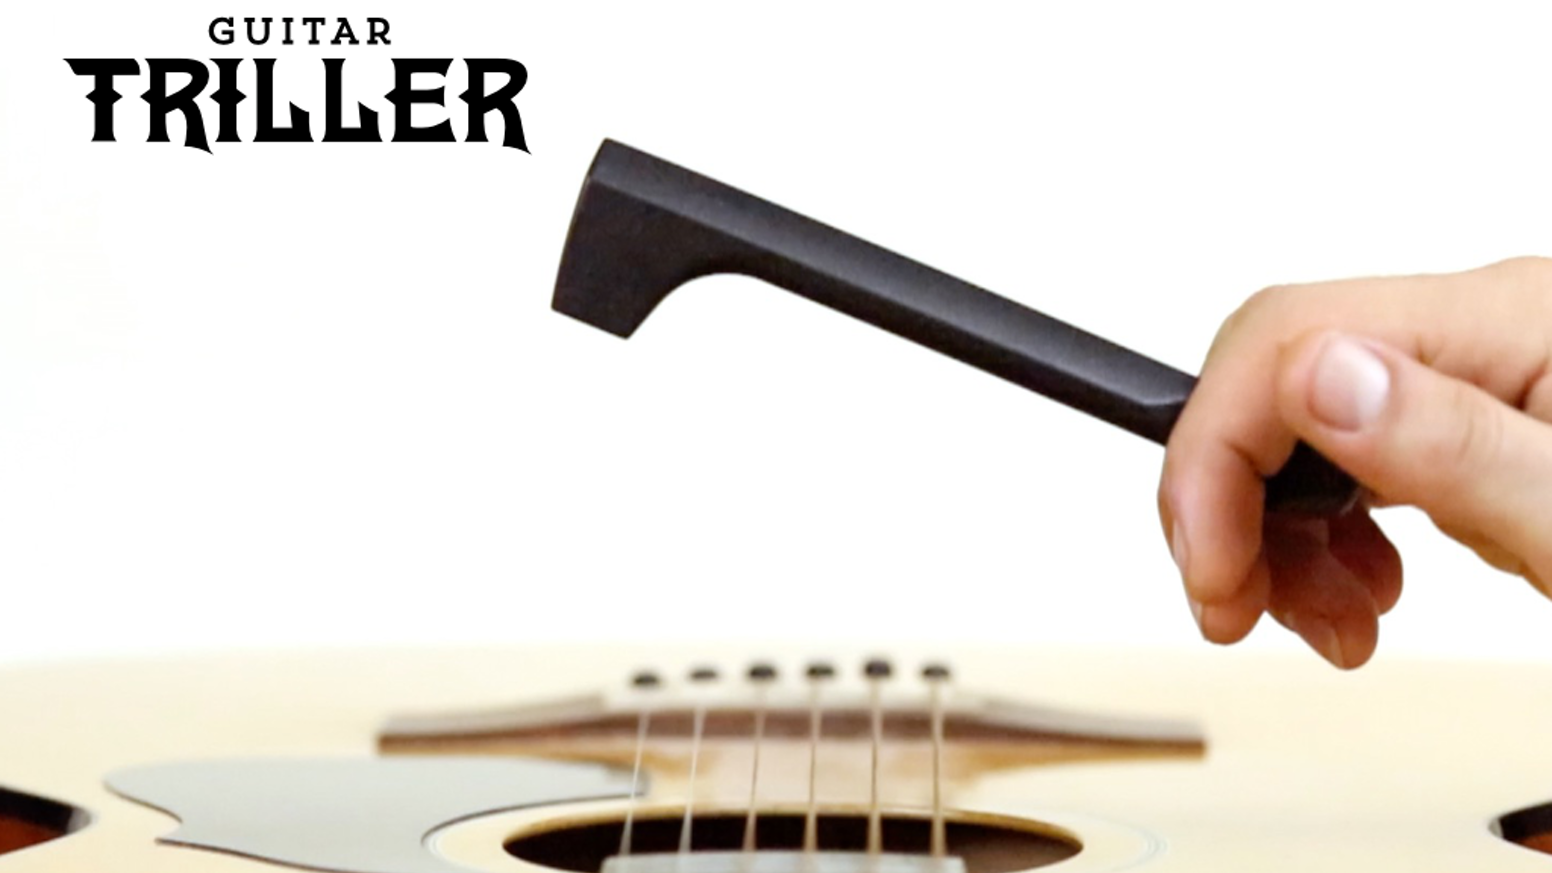 Guitar Triller Experience A World Of New Guitar Sounds By Guitar